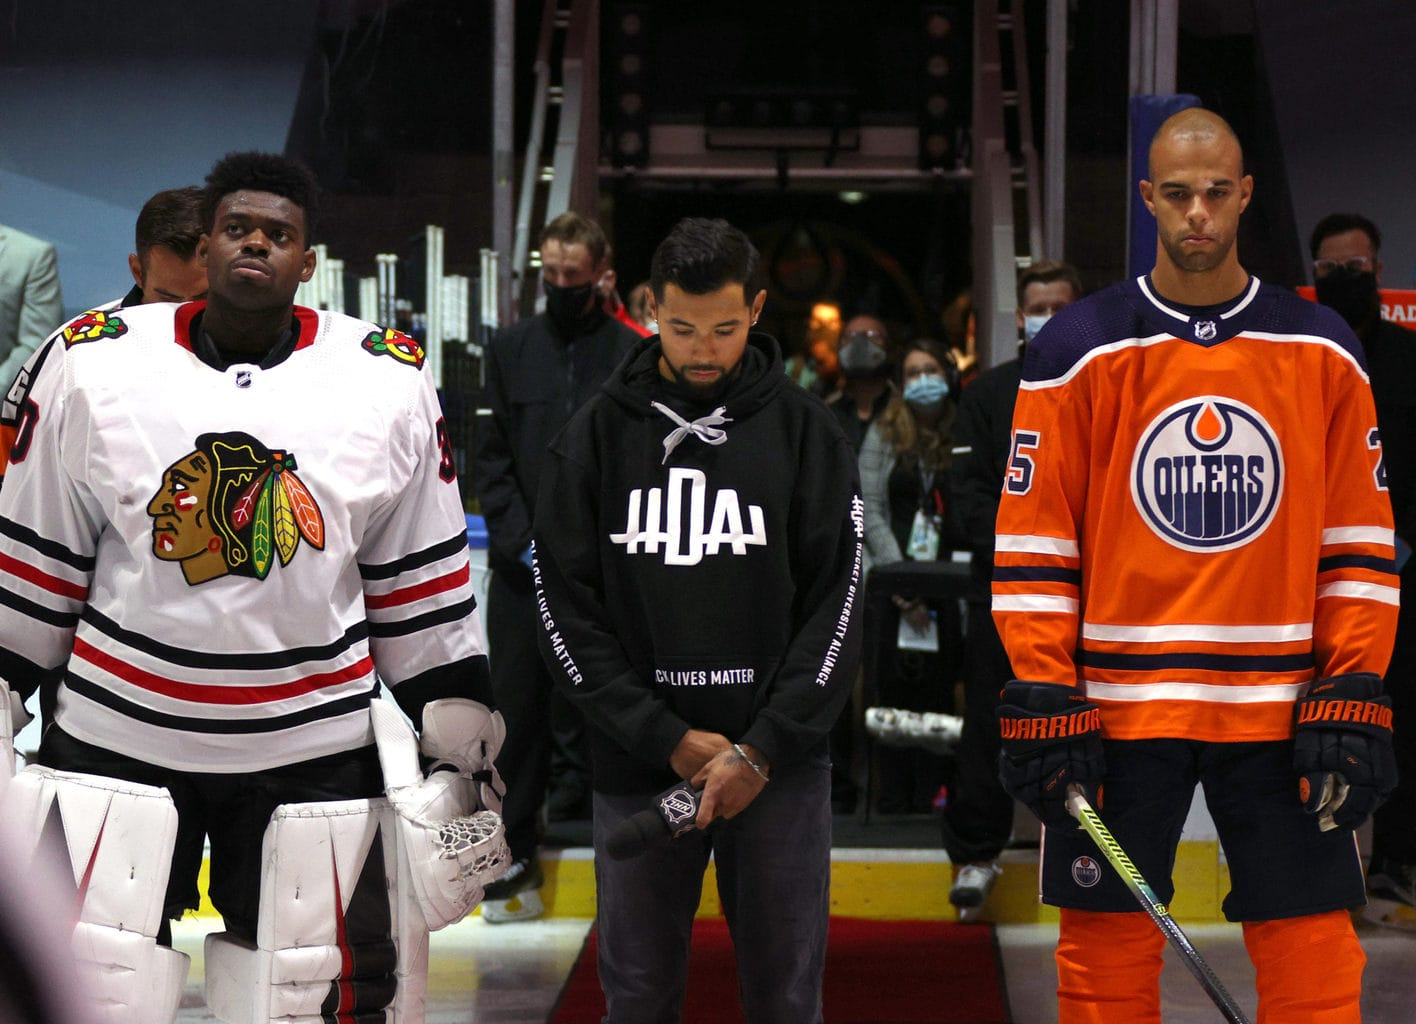 Matt Dumba Speaks for NHL & Hockey Diversity Alliance Before Game